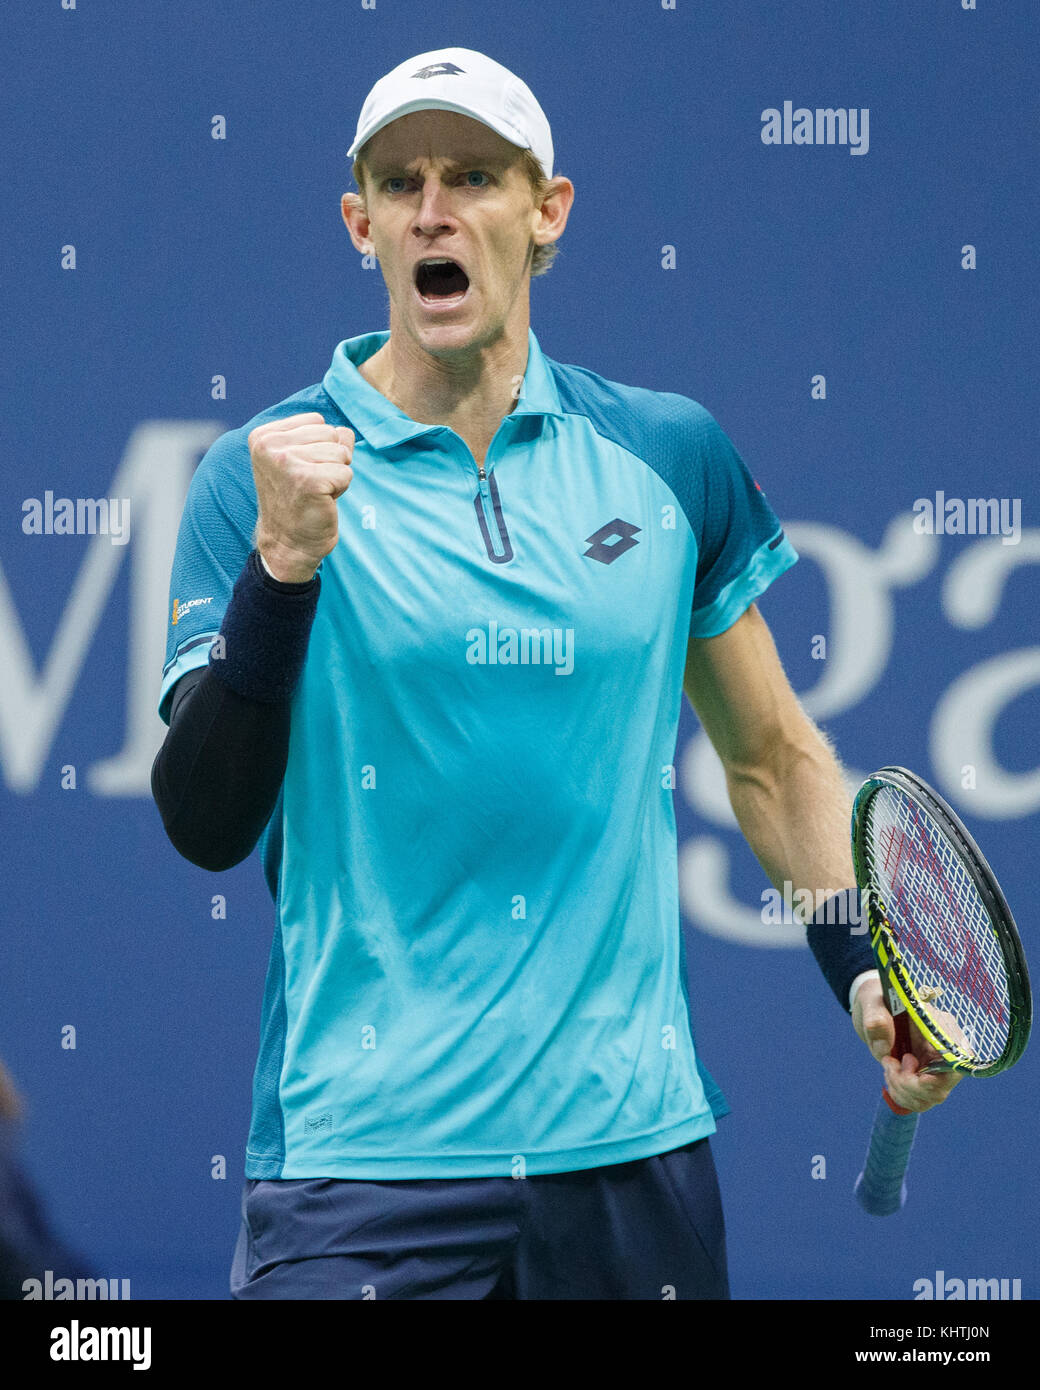 South African  tennis player KEVIN ANDERSON (RSA)makes a fist and celebrates at US Open 2017 Tennis Championship, - Stock Image